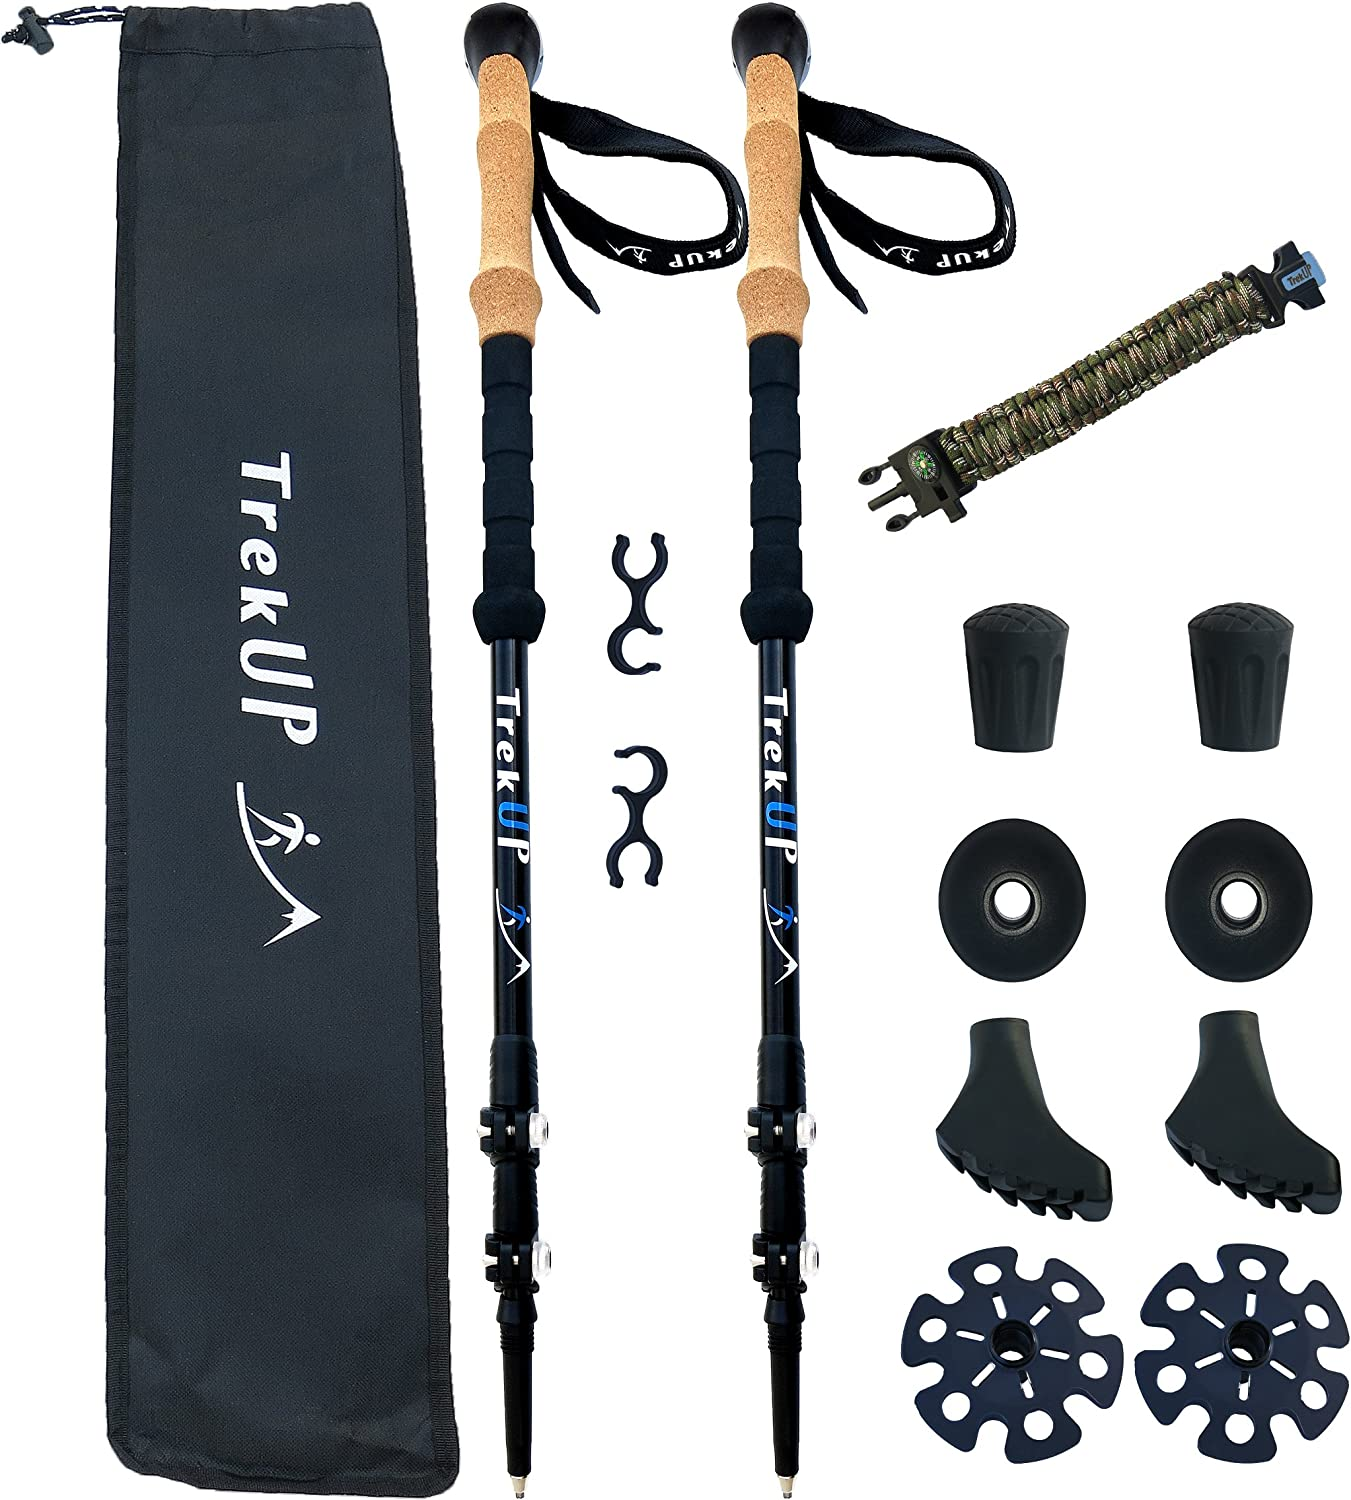 TrekUP Trekking Sticks for Hiking. Best Nordic Walking Poles for Women and Men, with Comfortable Cork Grips. Adjustable, Ultralight and Sturdy. Quick Lock for Faster Opening and Reliable Handling